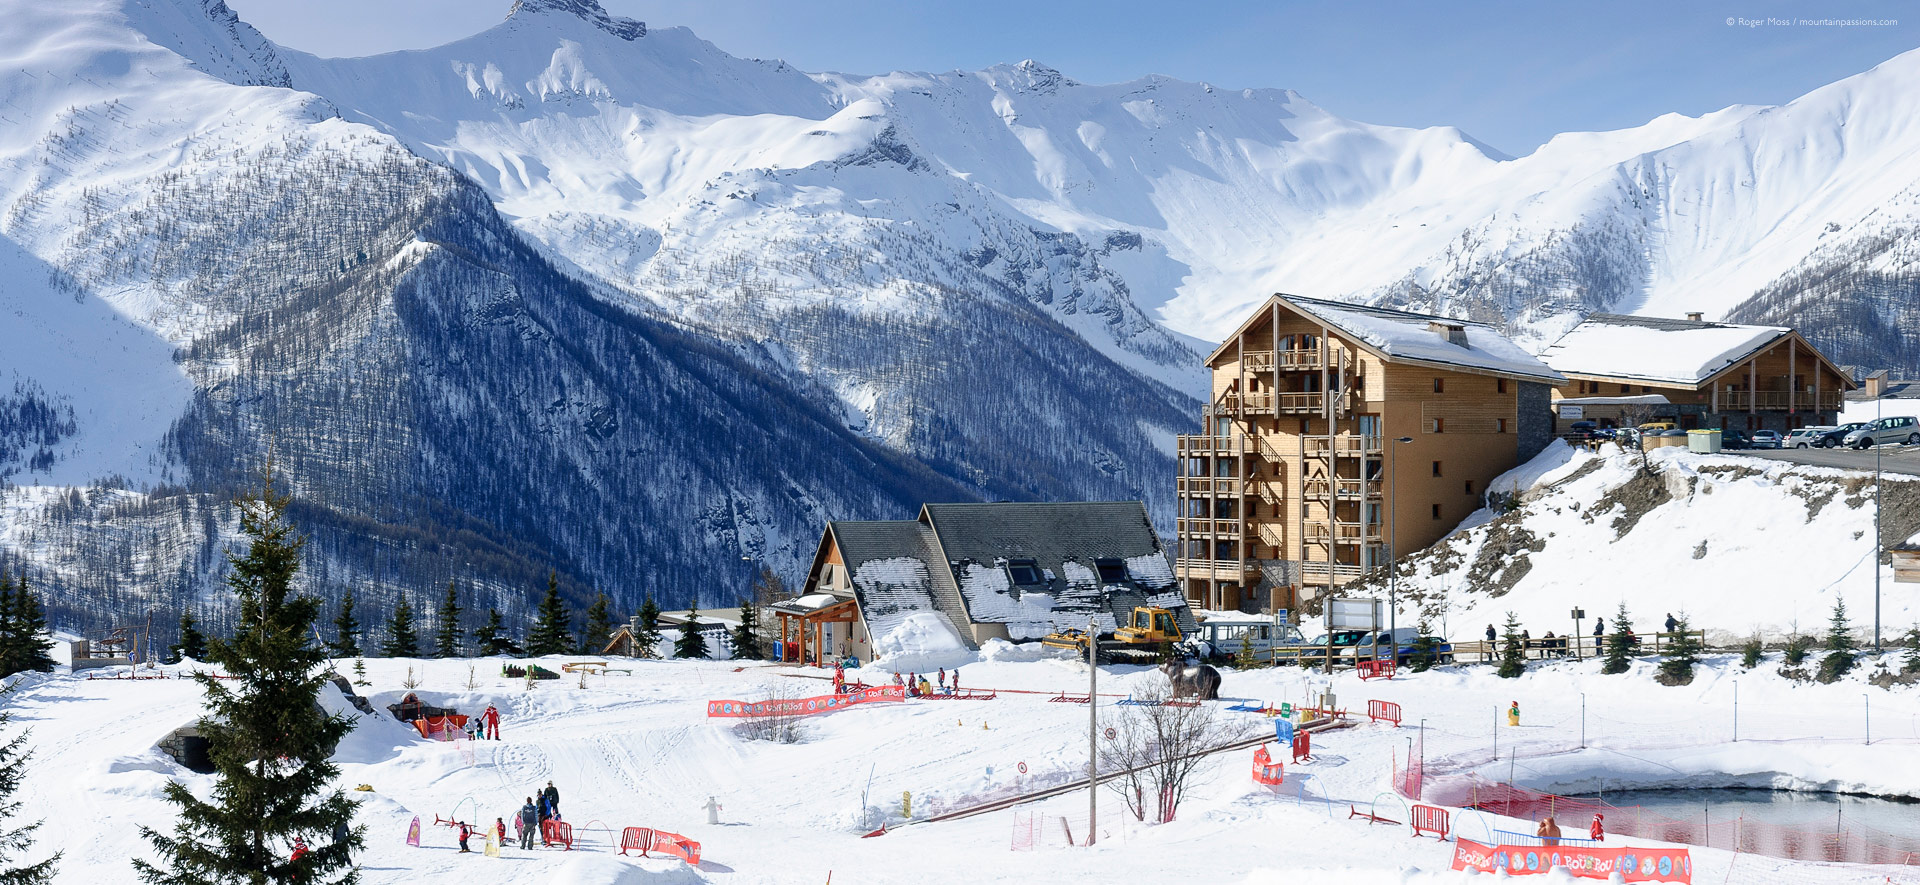 Wide view of children's ski school area, with apartments and mountains